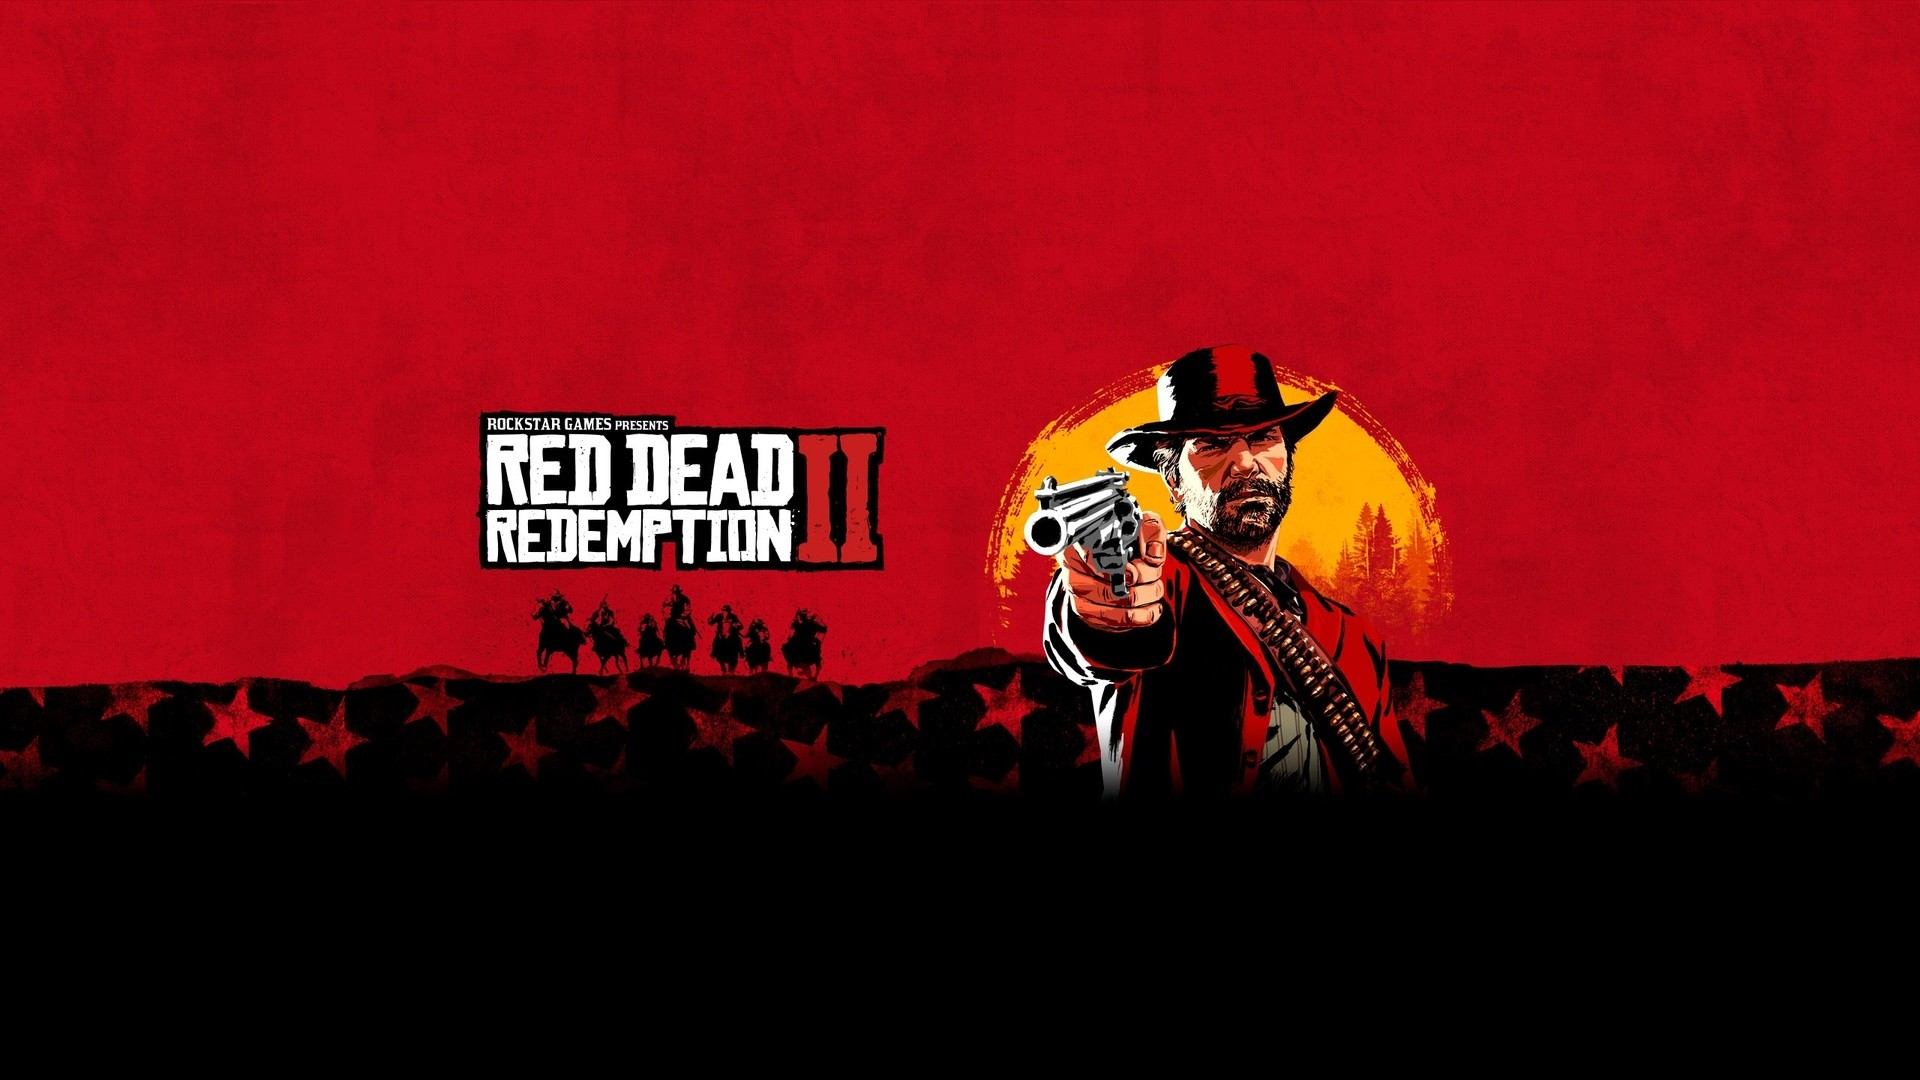 1920x1080 Red Dead Redemption 2 Rockstar Wallpapers Hd Resolution